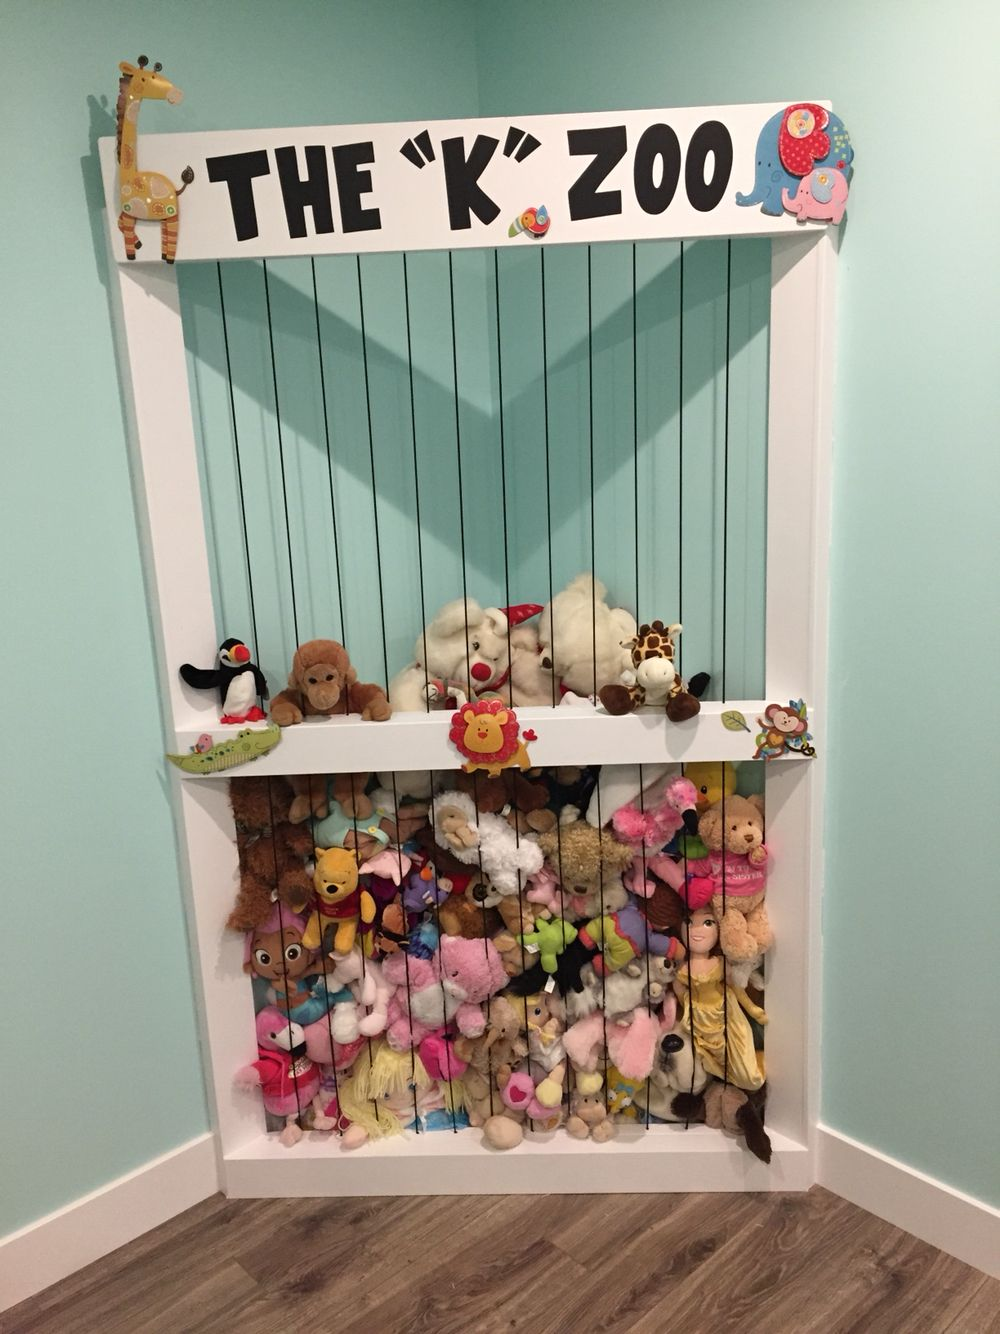 Stuffed Animal Toy Storage: Stuffy Zoo, Play Room, Bungee Cord, Cricut, Vinyl, Toy